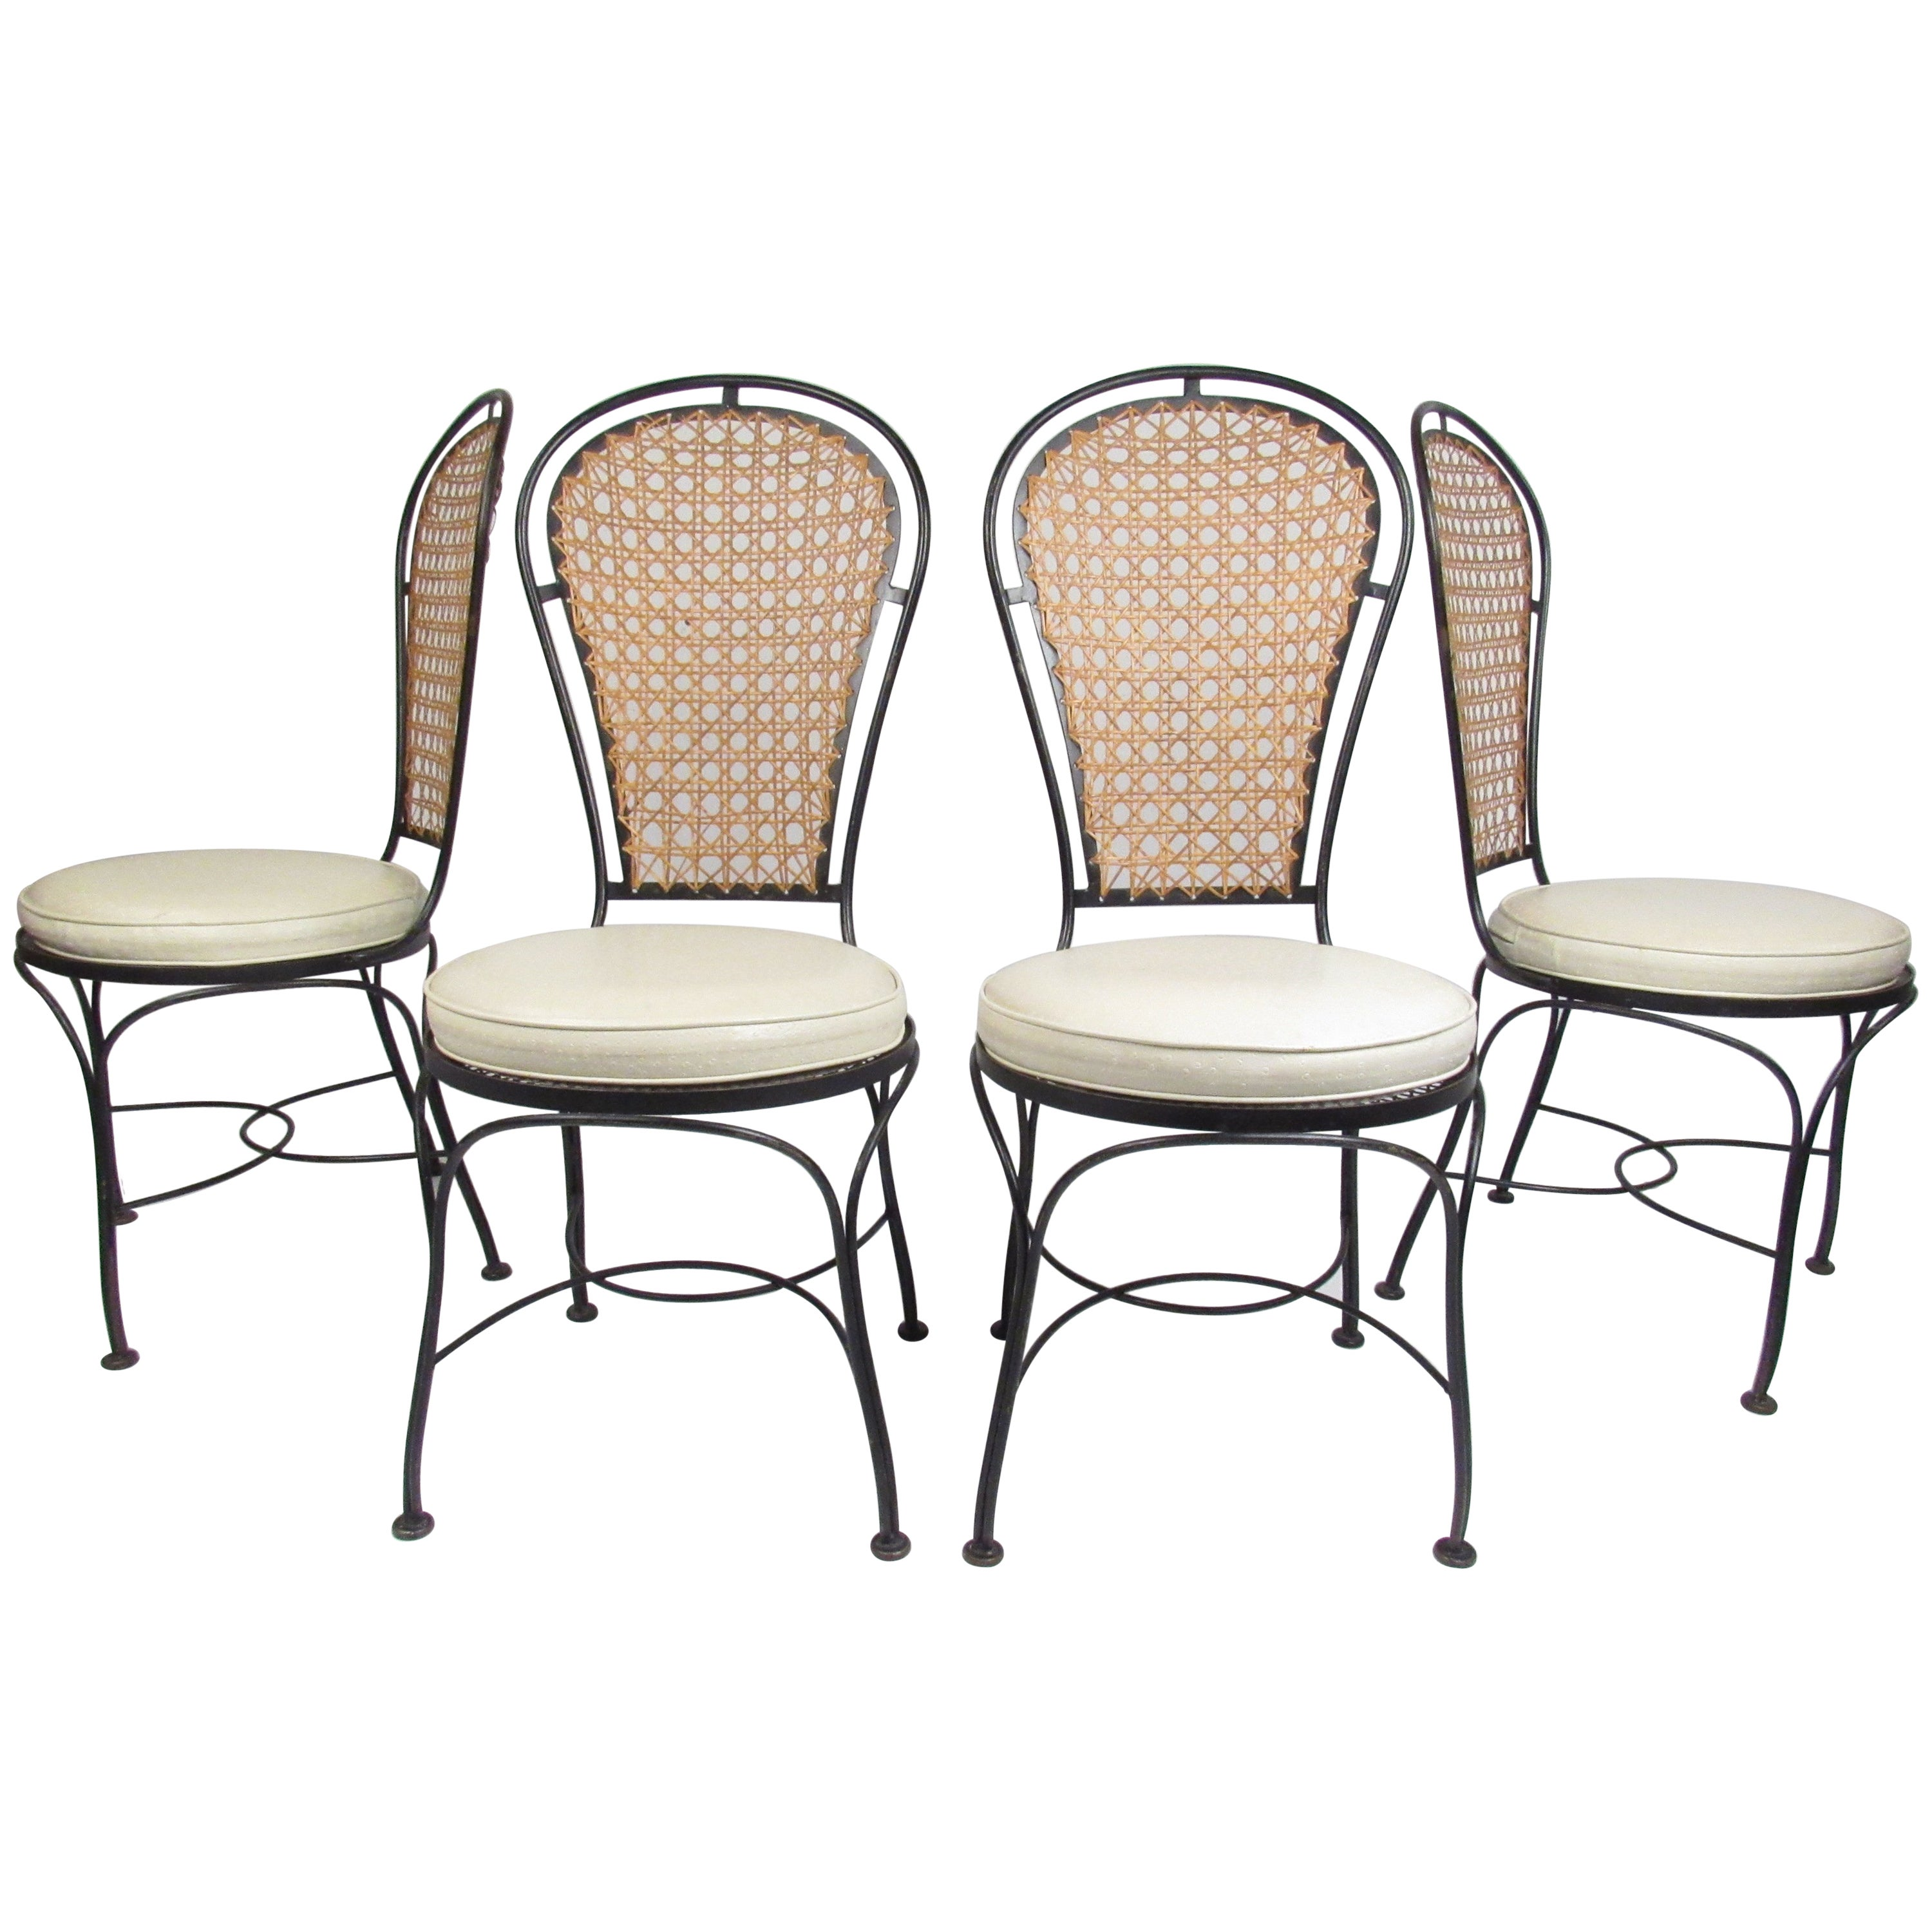 Set of Four Midcentury Wrought Iron Dining Chairs with a Cane Backrest